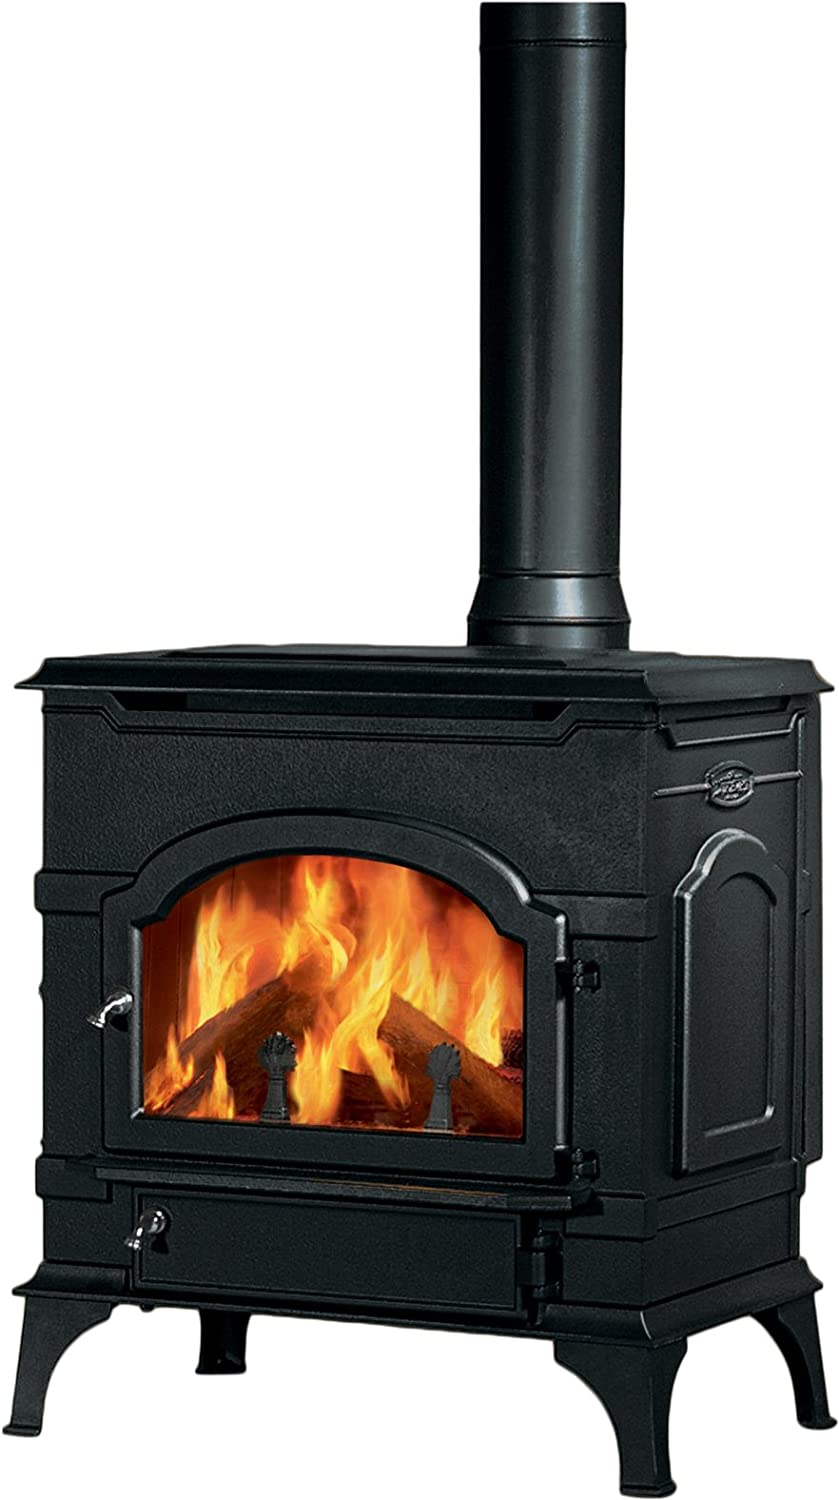 amazon com vermont castings 2478 non catalytic cast iron stove